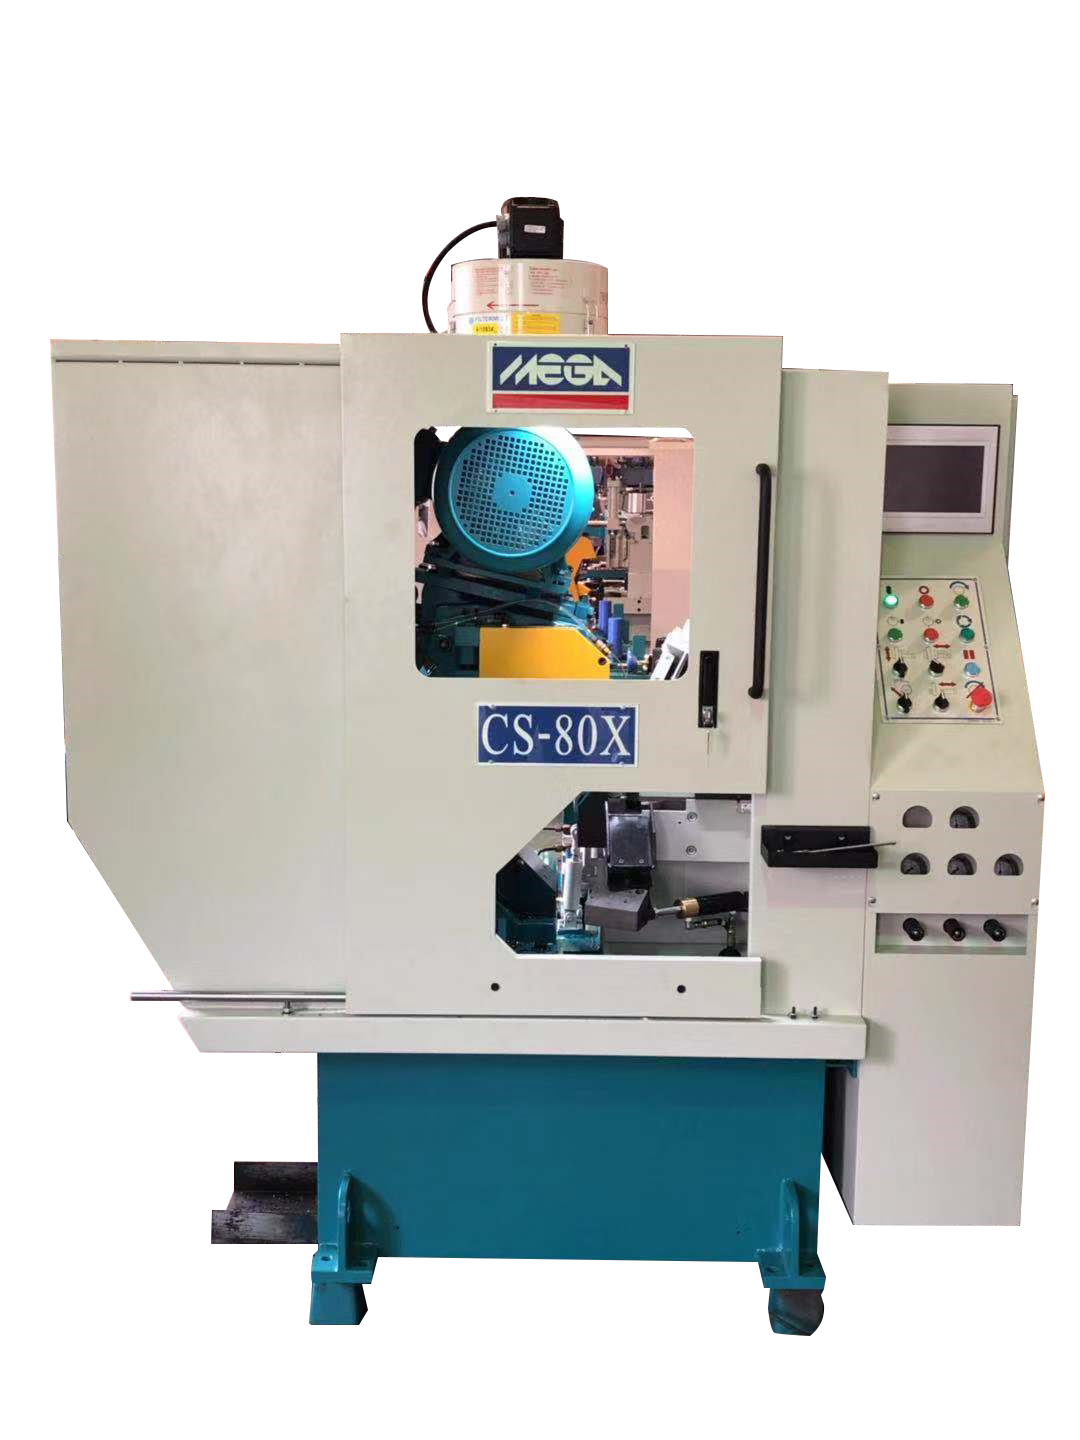 NC HIGH SPEED HEAVY DUTY CARBIDE CIRCULAR SAWING MACHINE